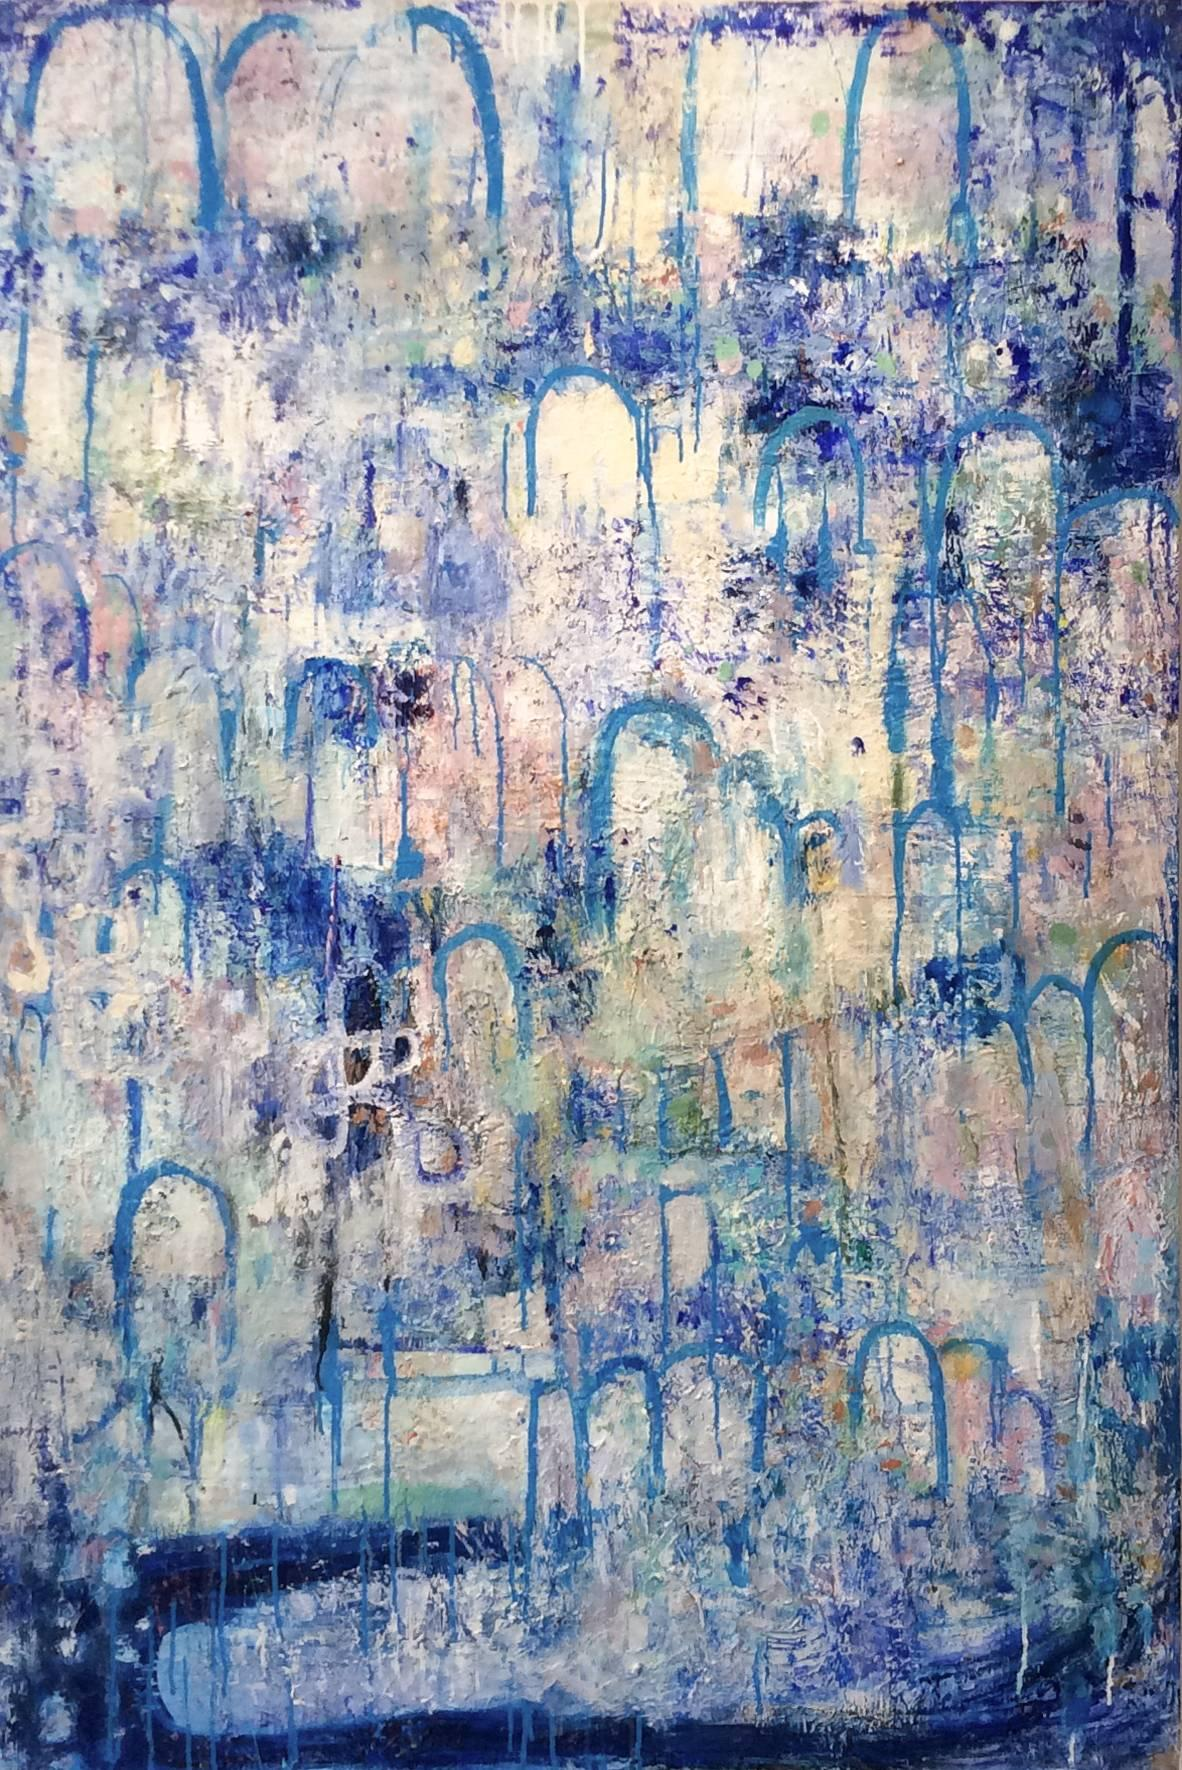 Hydrology (Contemporary Vertical Abstract Expressionist Painting, Blue & White)